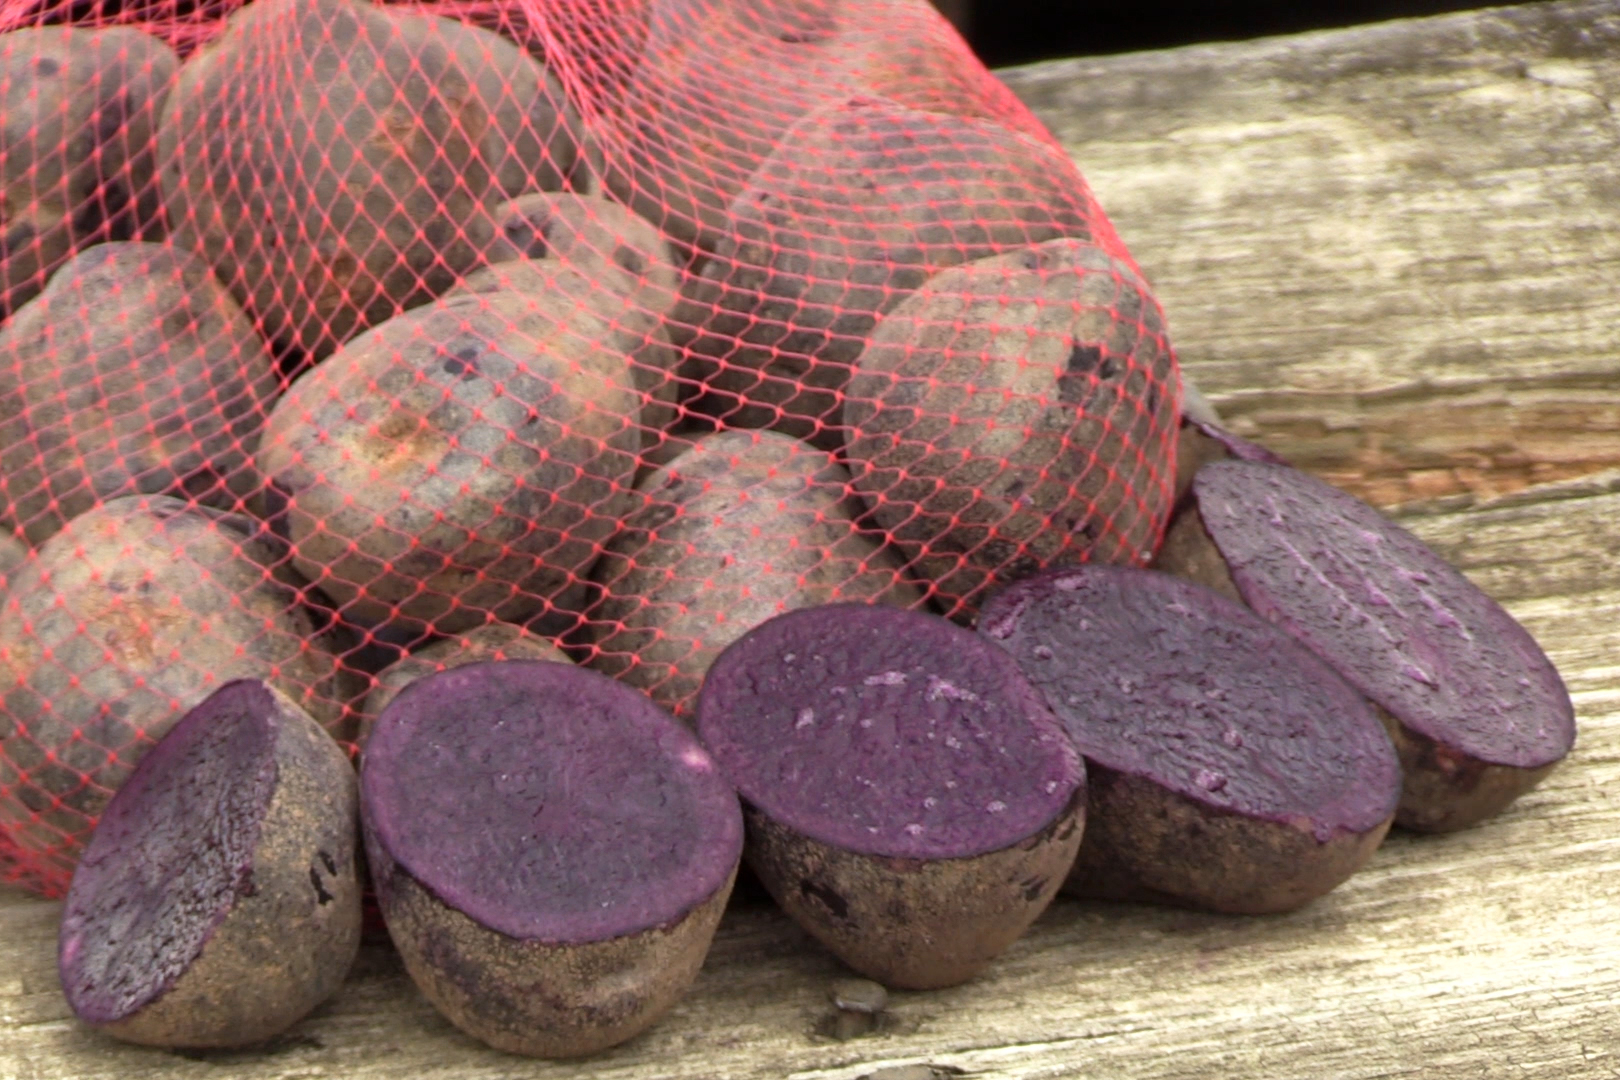 purple potatoes cut in half and in bag